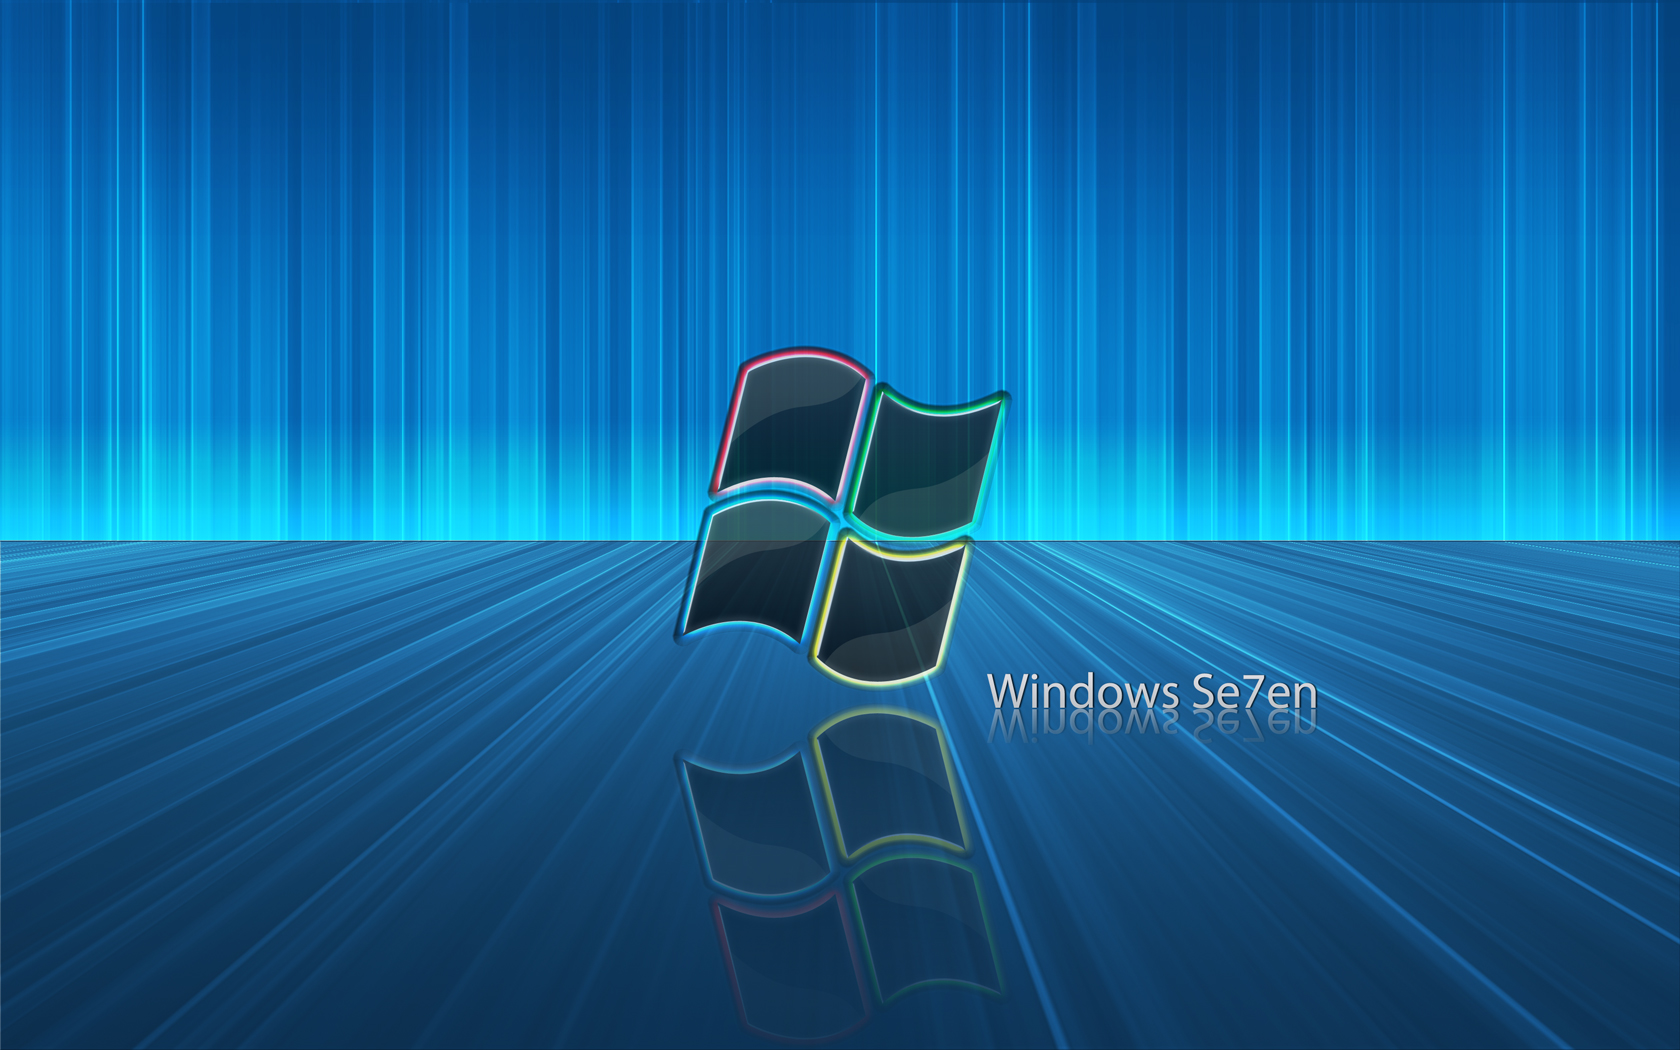 windows 7 wallpapers by - photo #49